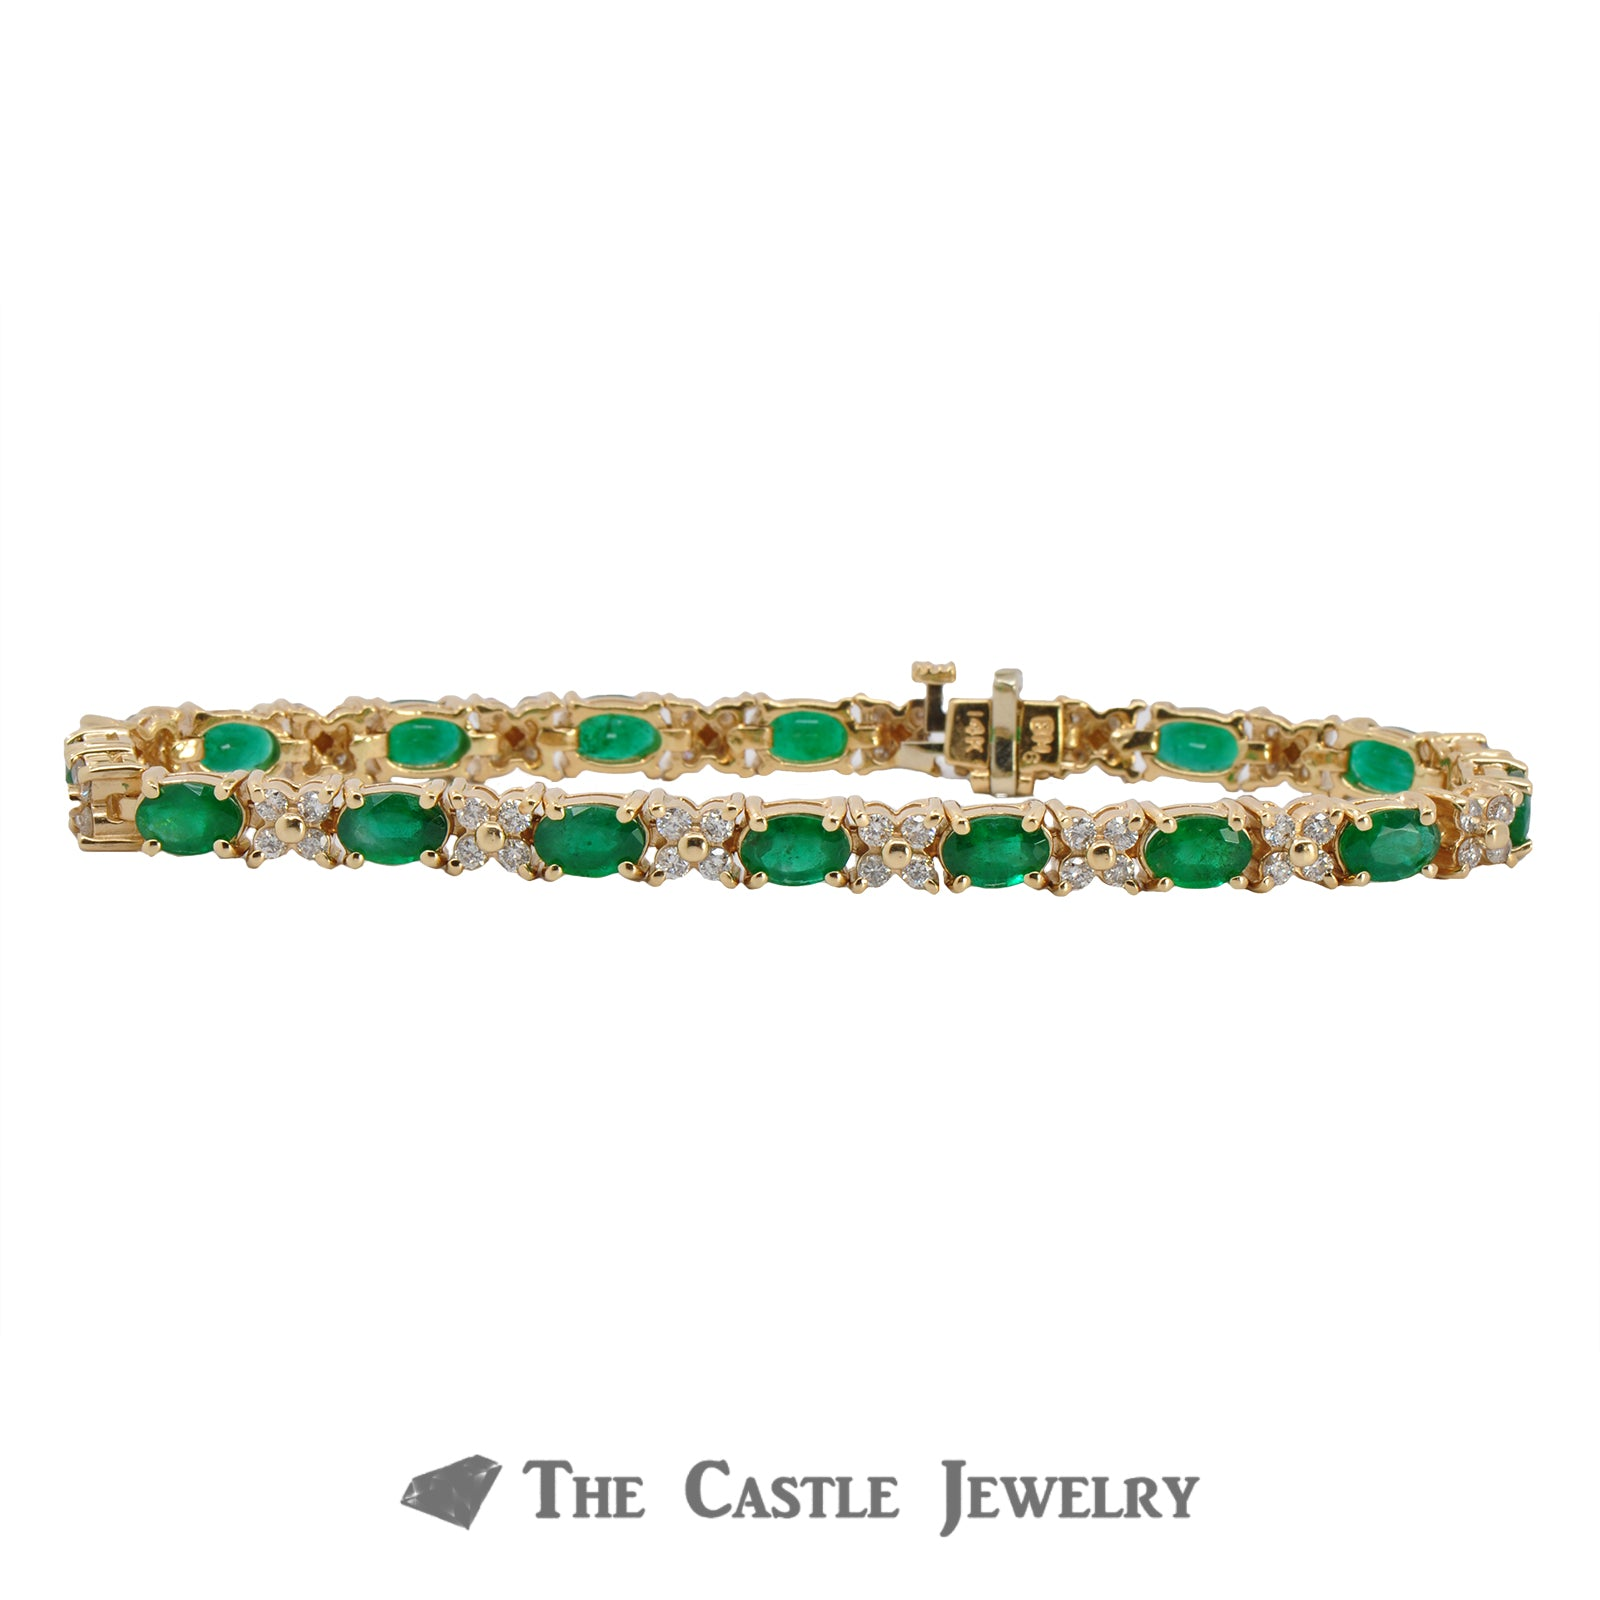 Oval Cut Emerald and Diamond Bracelet in 14K Yellow Gold